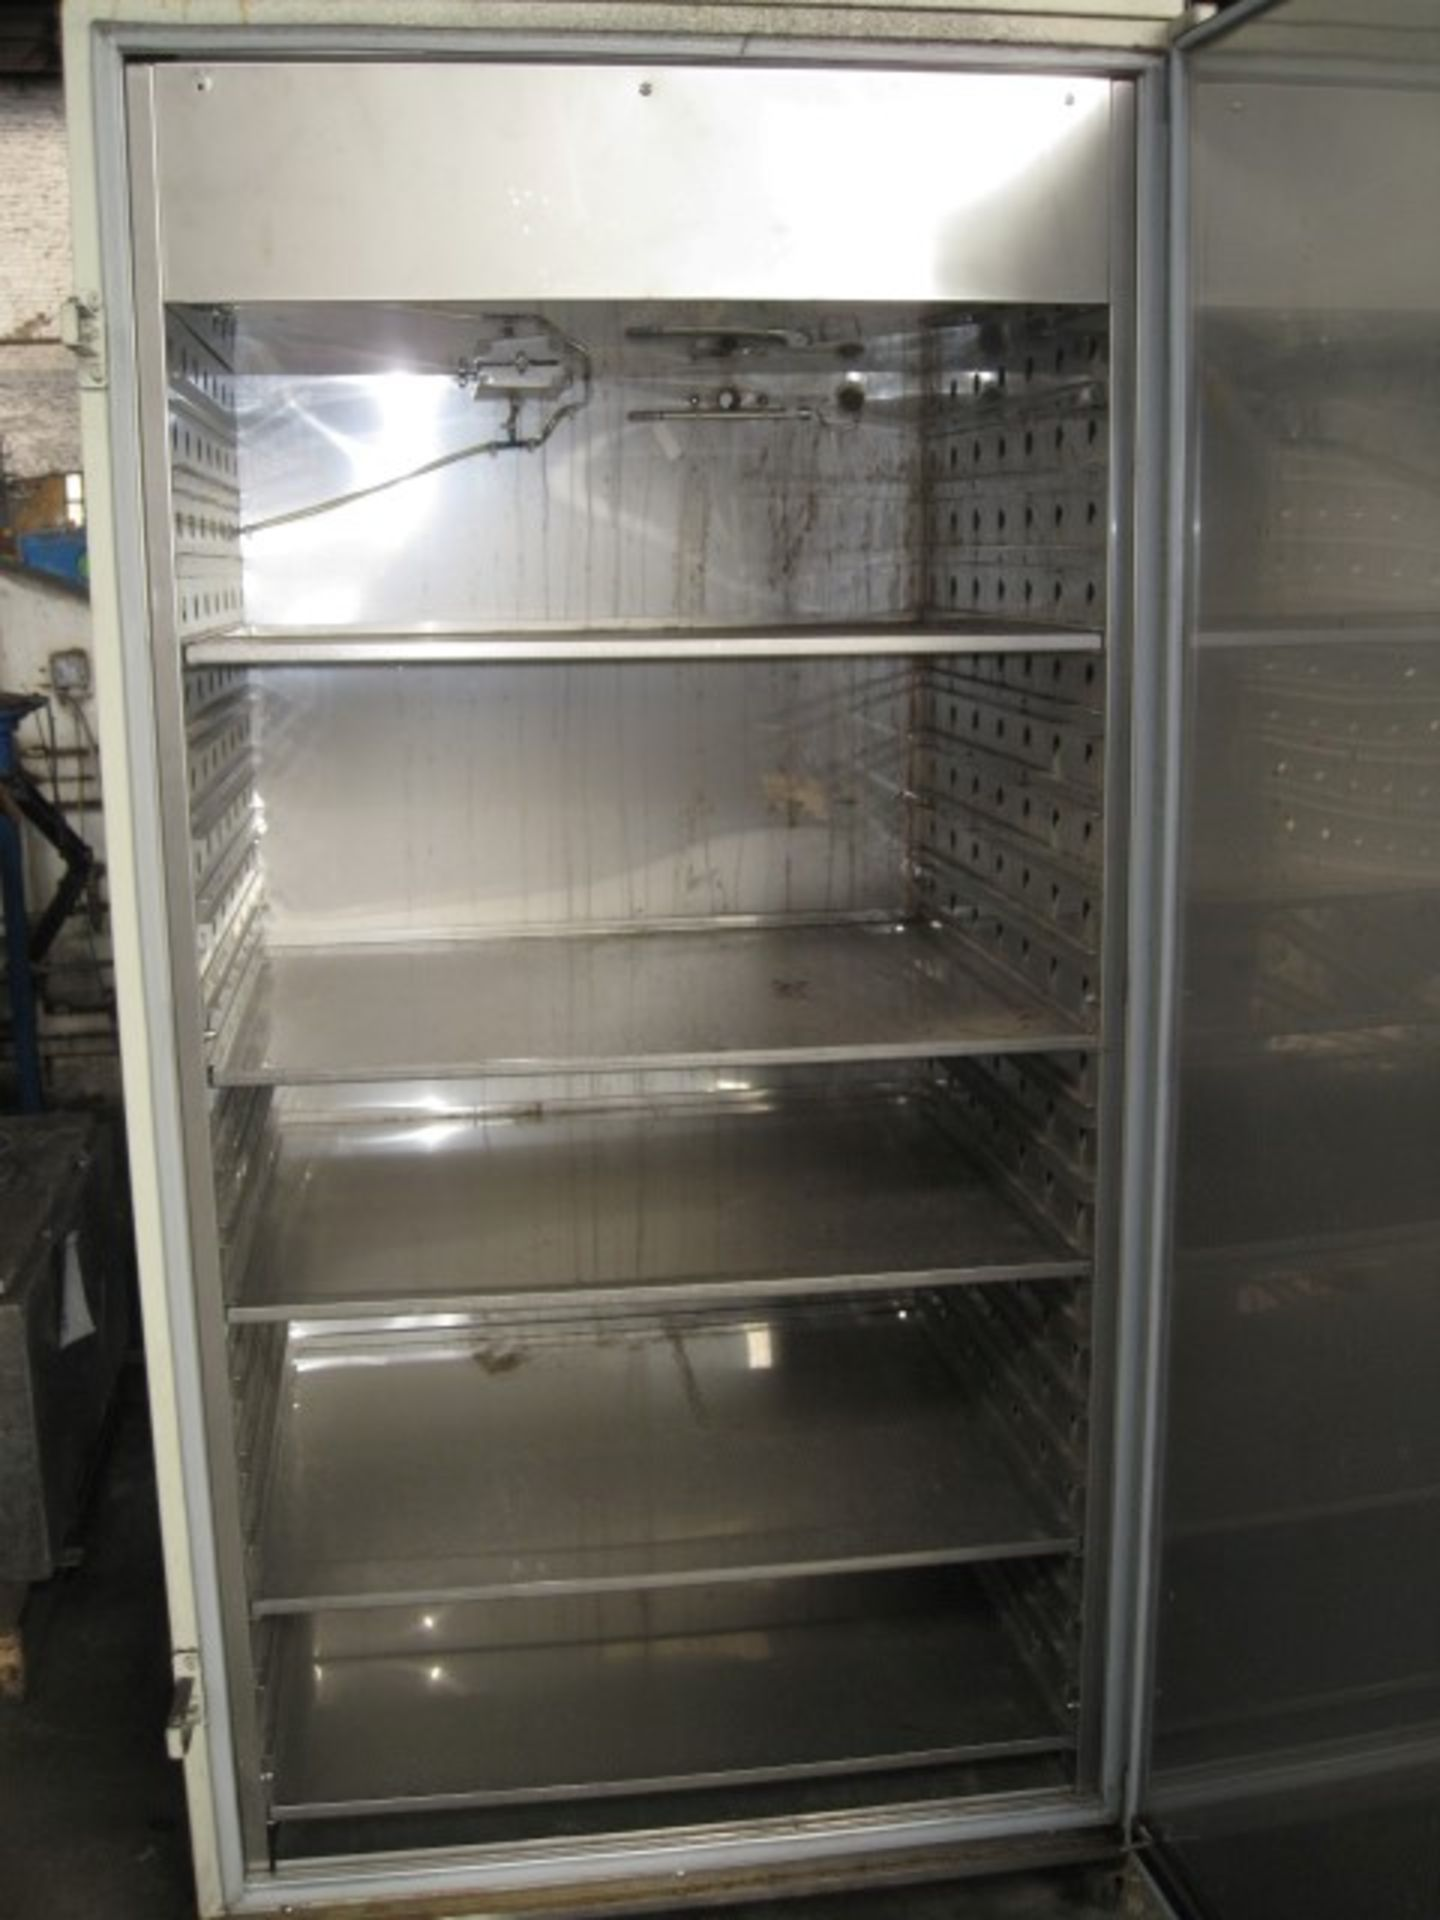 Lot 9 - Lunaire incubator, model CEO932W-4, stainless steel contact surfaces, single doo